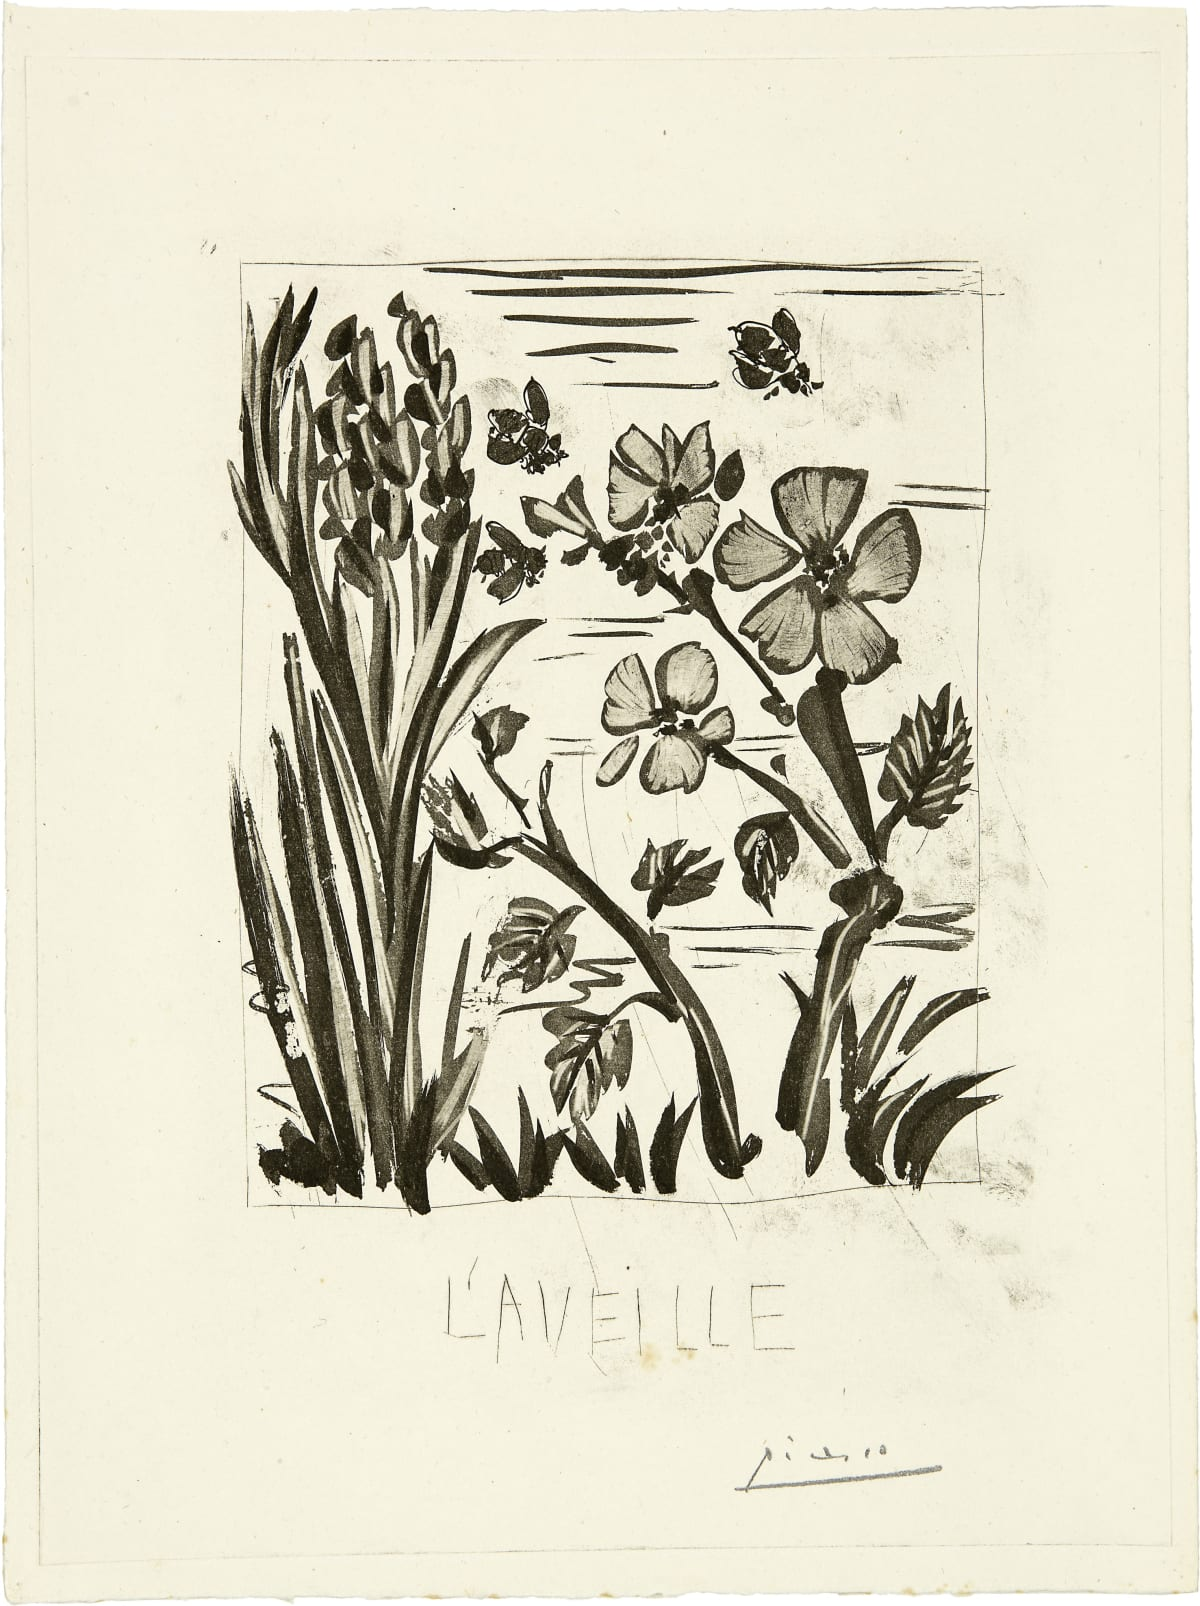 Pablo Picasso L'aveille, 1936-42 Sugar-lift Aquatint, scraper and dry point on Montval paper 41.5 × 31.3 cm Edition of 47 + 1AP